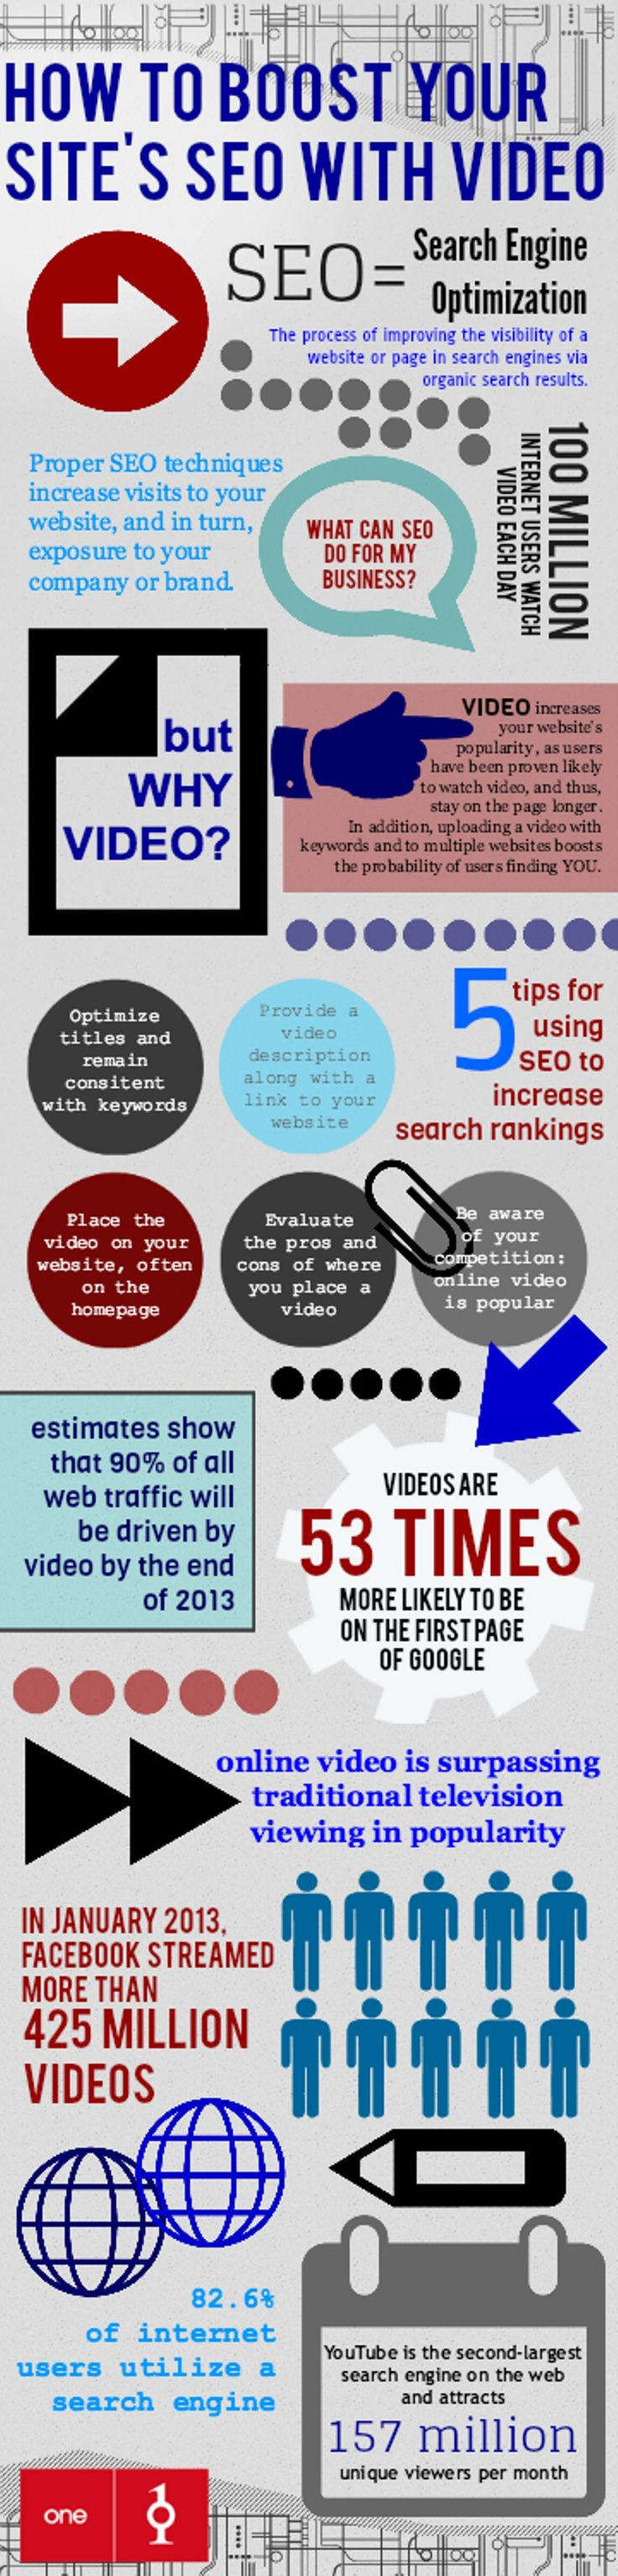 How to Boost Your Sites SEO with Video For more resources and tips visit www.socialmediamamma.com  [Infographic]